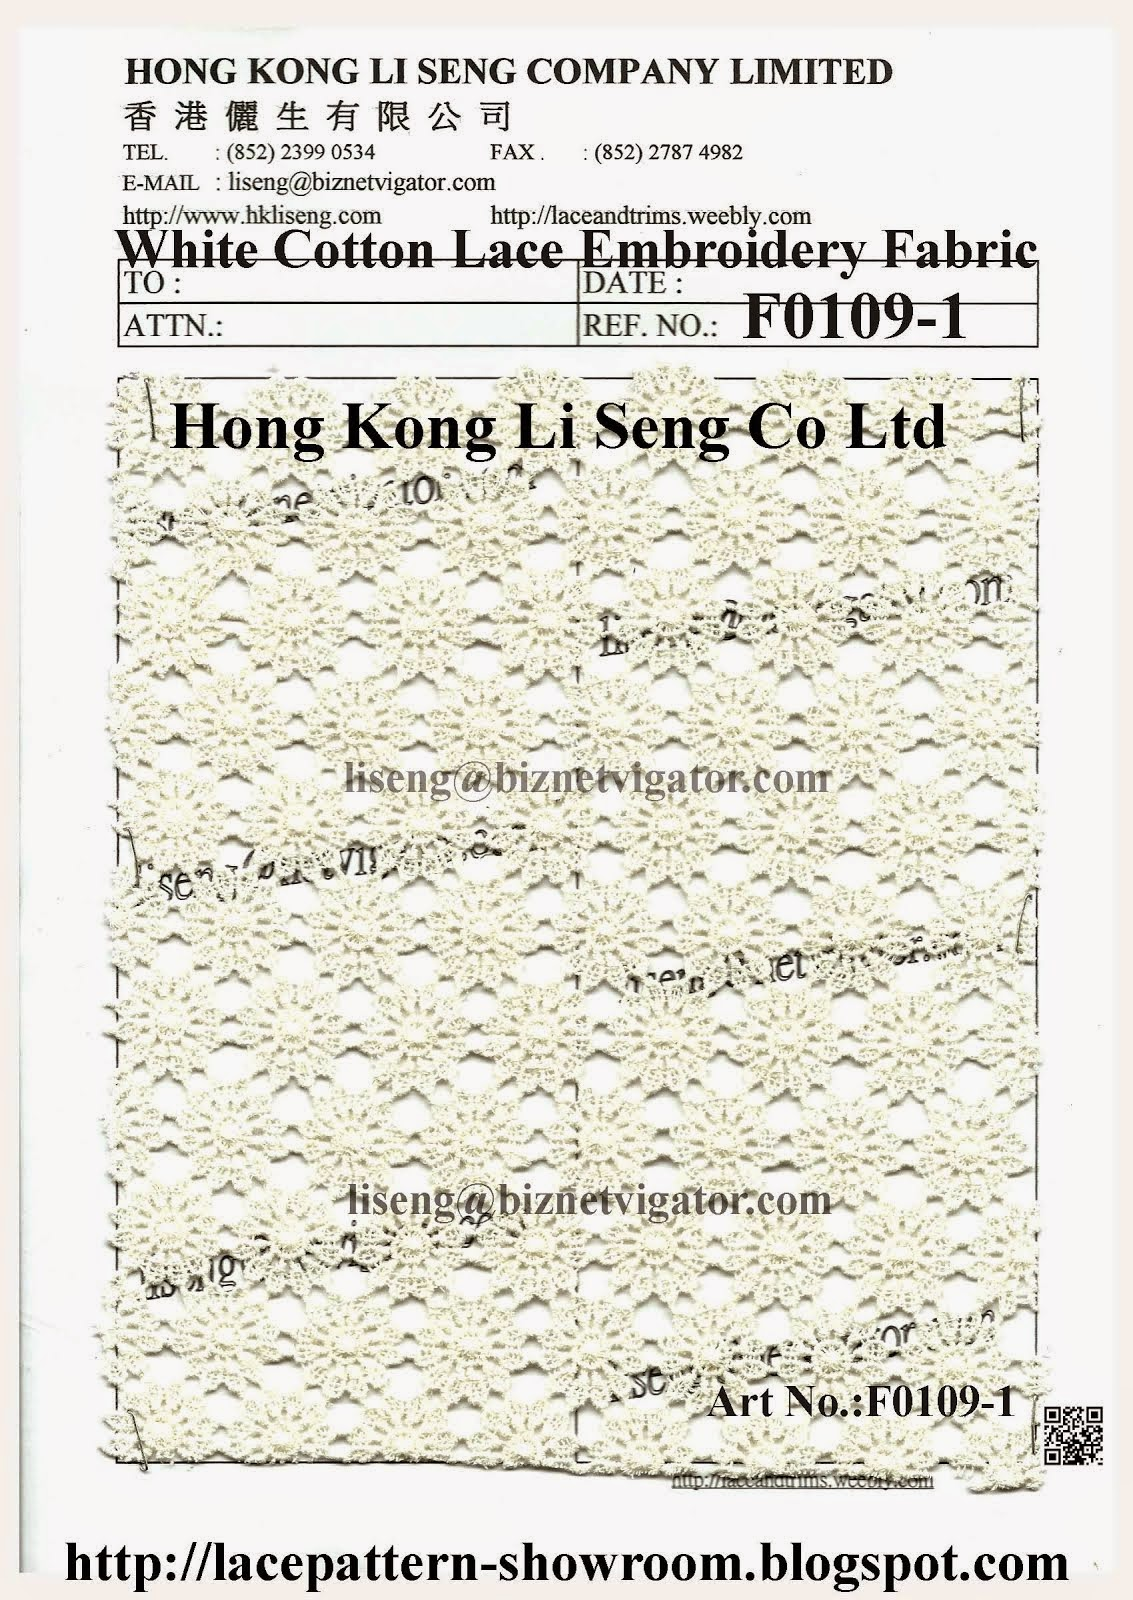 "New White Cotton Lace Embroidery Fabric - Manufactory "" Hong Kong Li Seng Co Ltd """